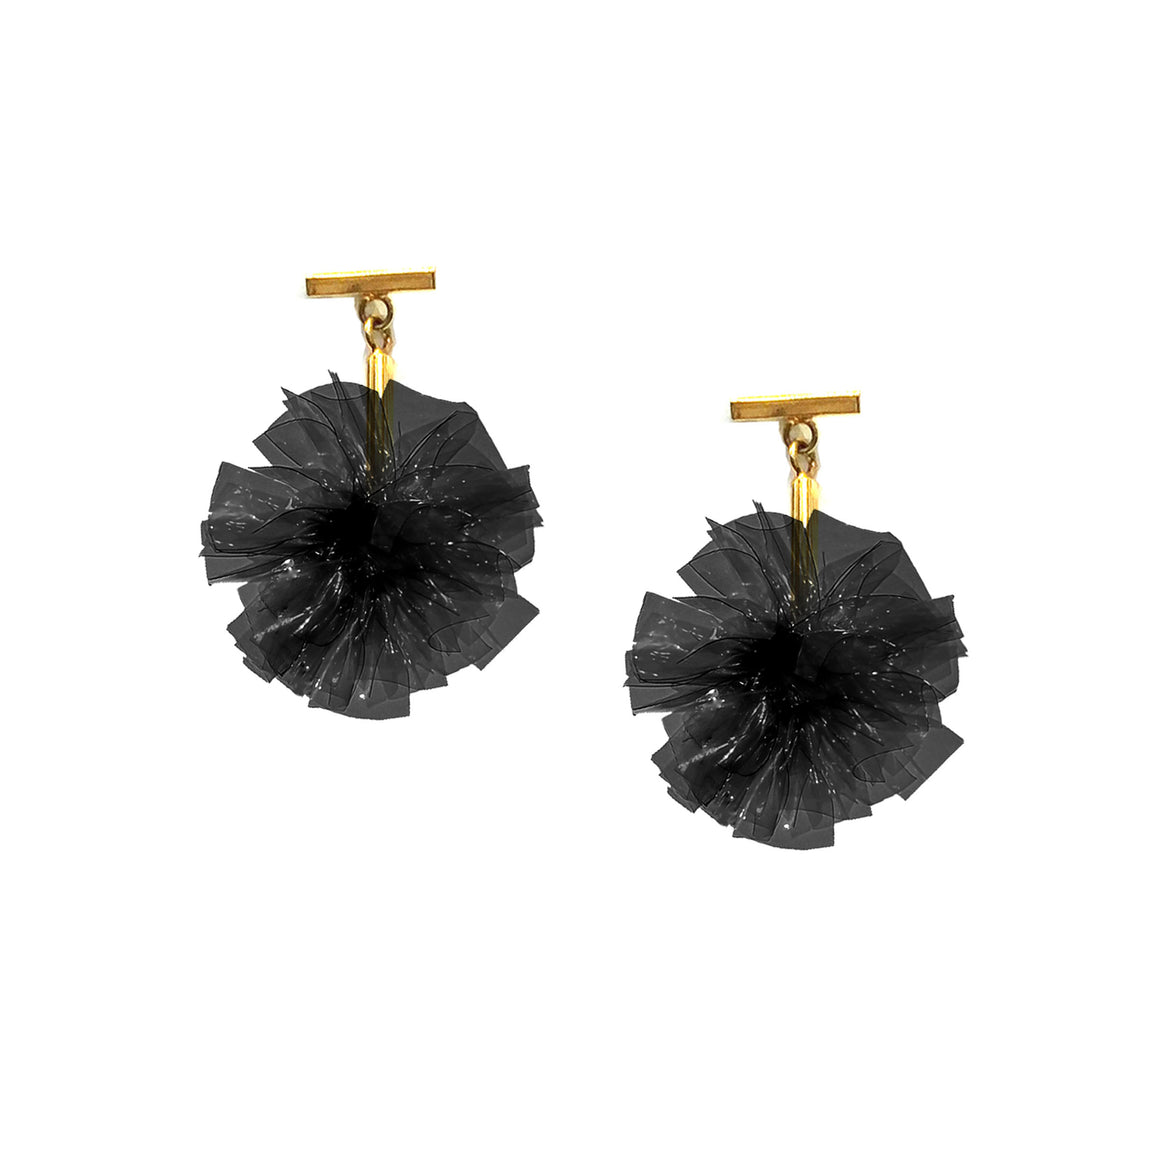 "Black 1"" Vinyl Pom Pom T Stud Earrings, Earrings, Tuleste, Tuleste"